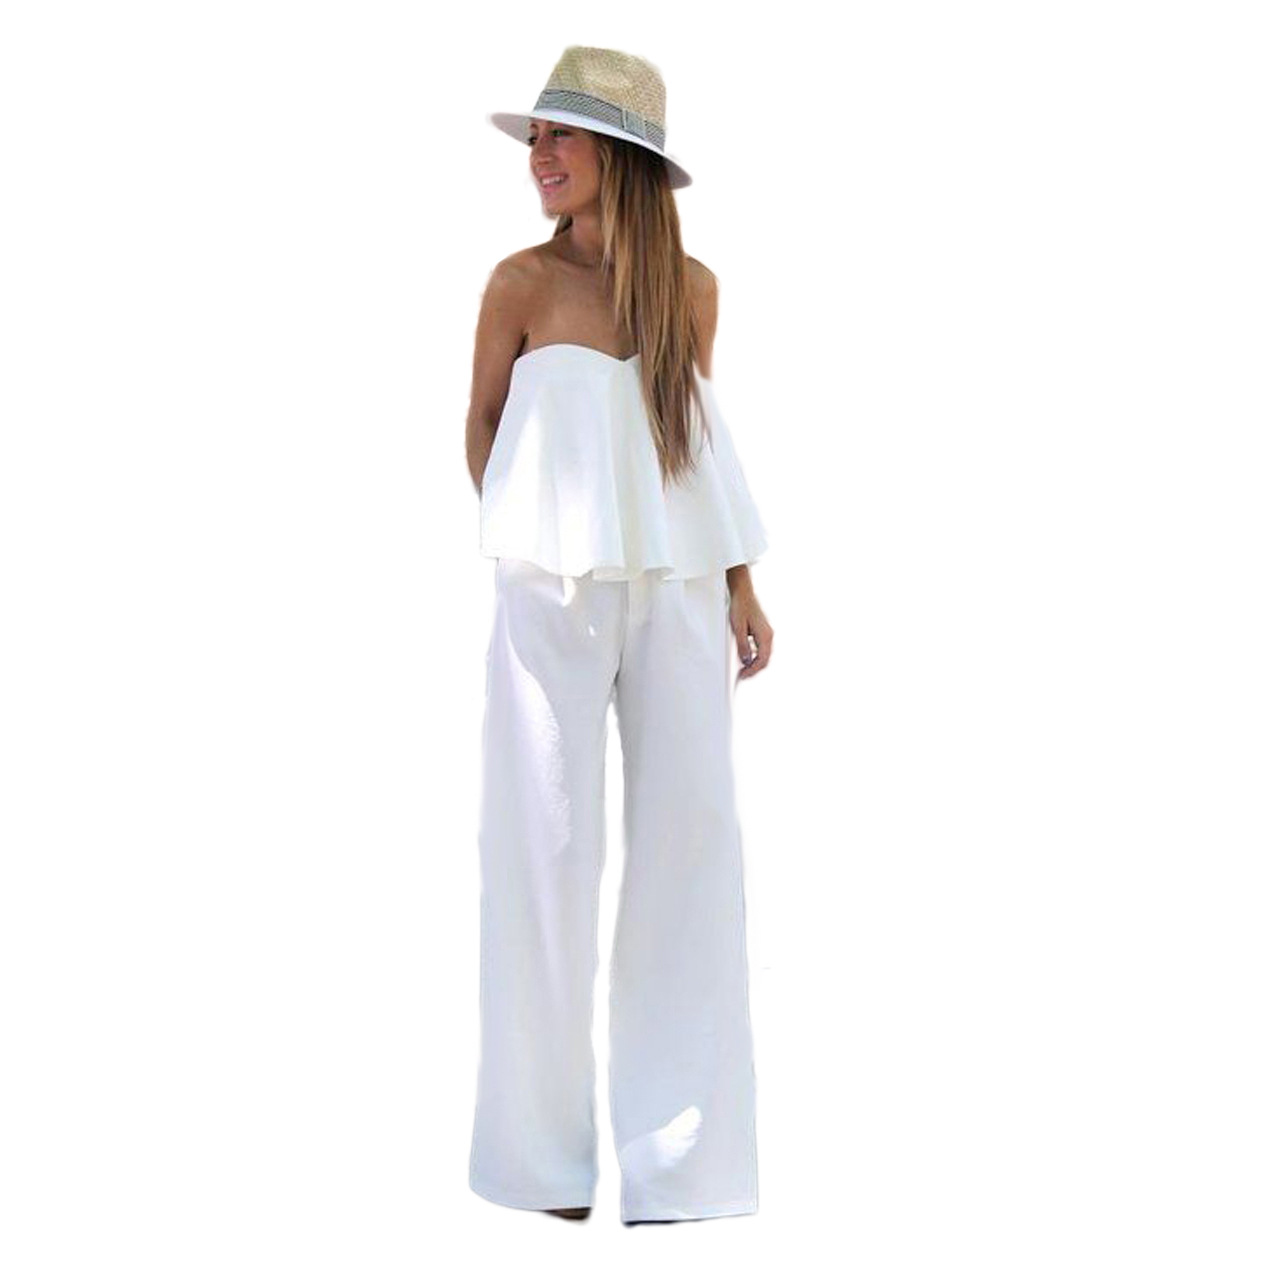 b35e9255757 Solid Strapless Tube Ruffled Wide Leg Flare Jumpsuit 24913-2. Loading zoom